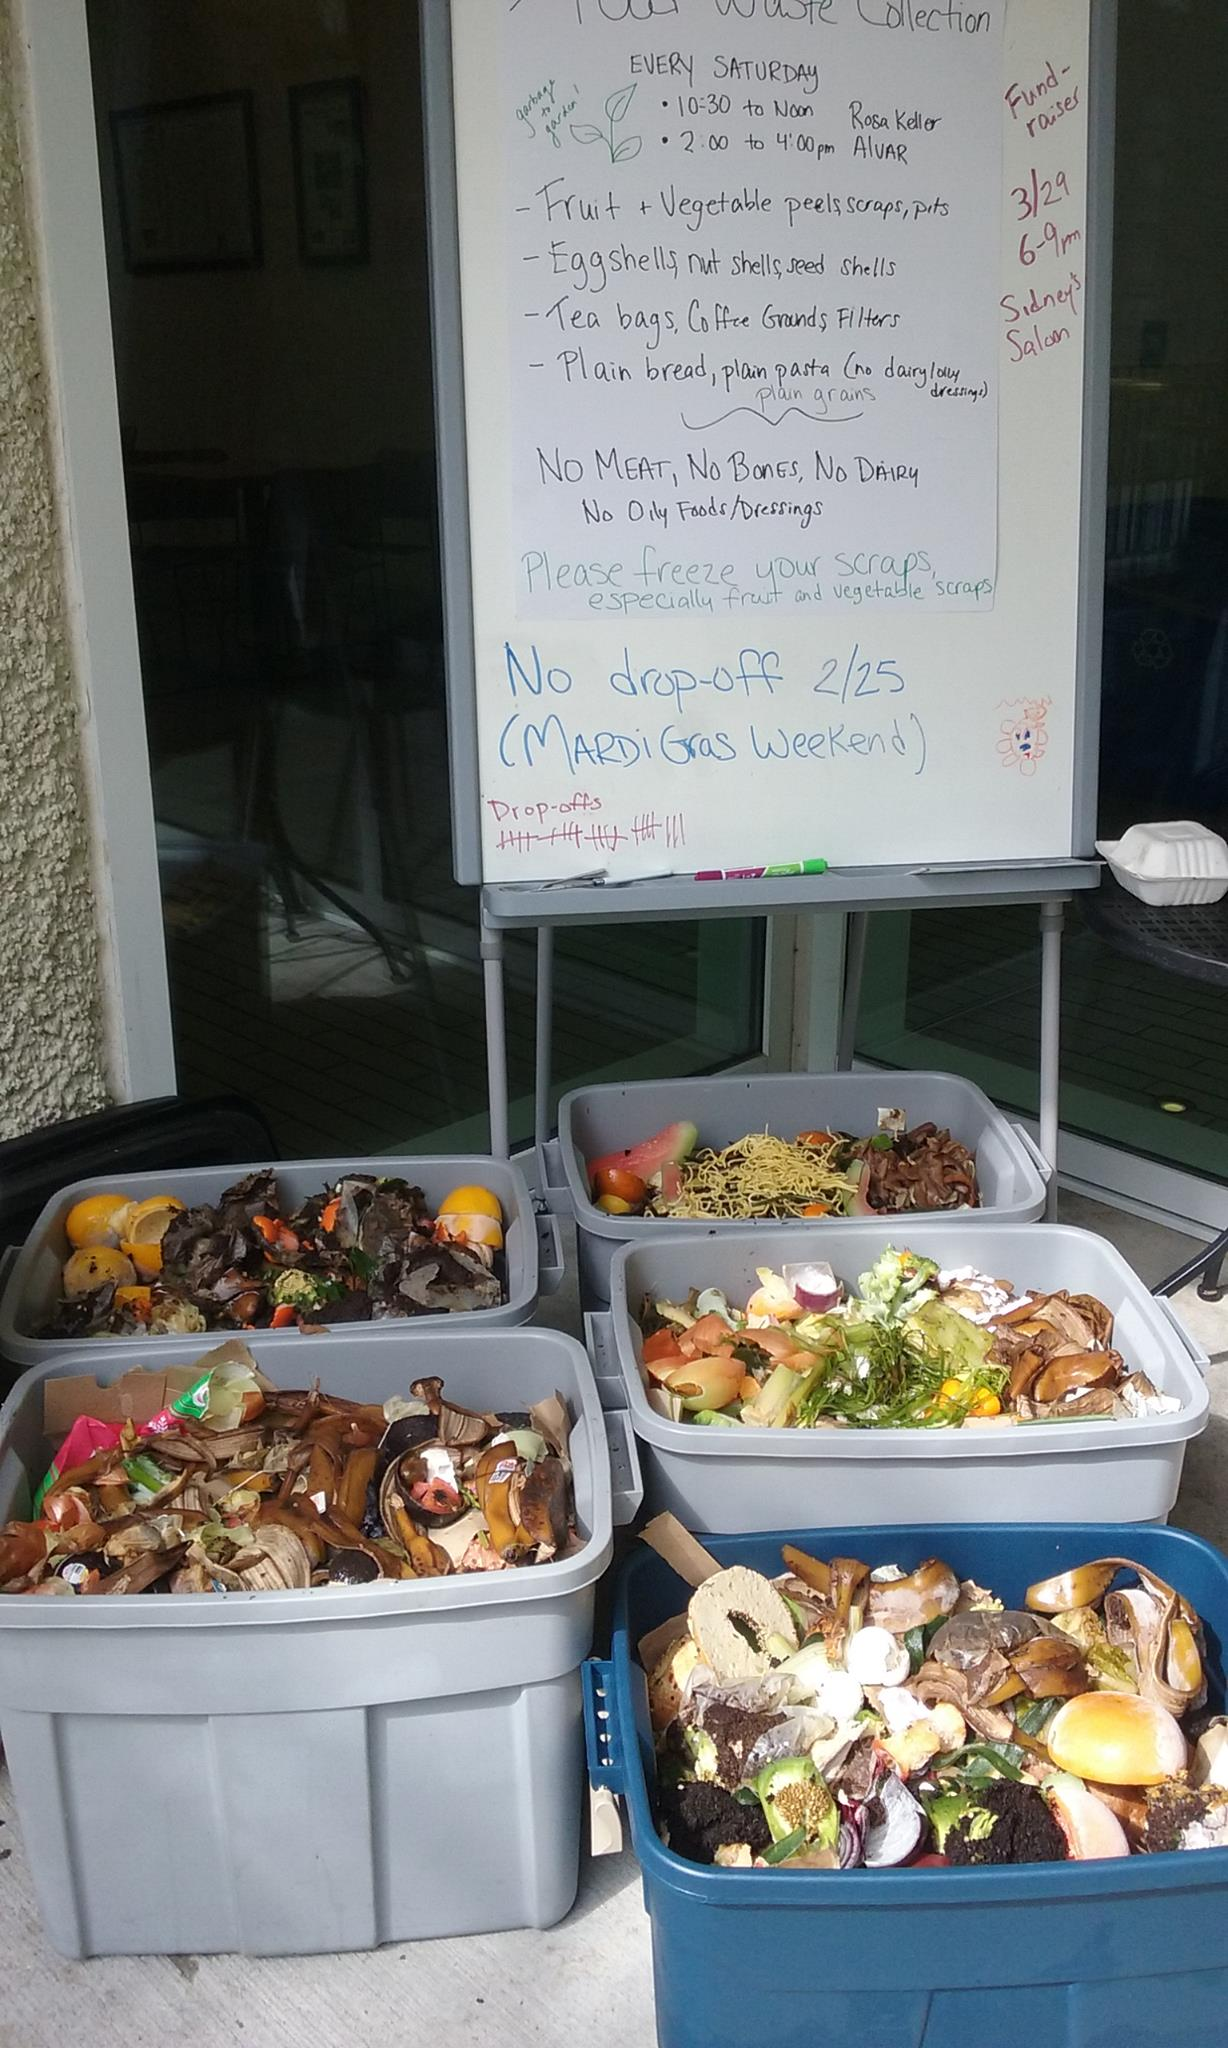 Rosa Keller Library Food Waste Collection